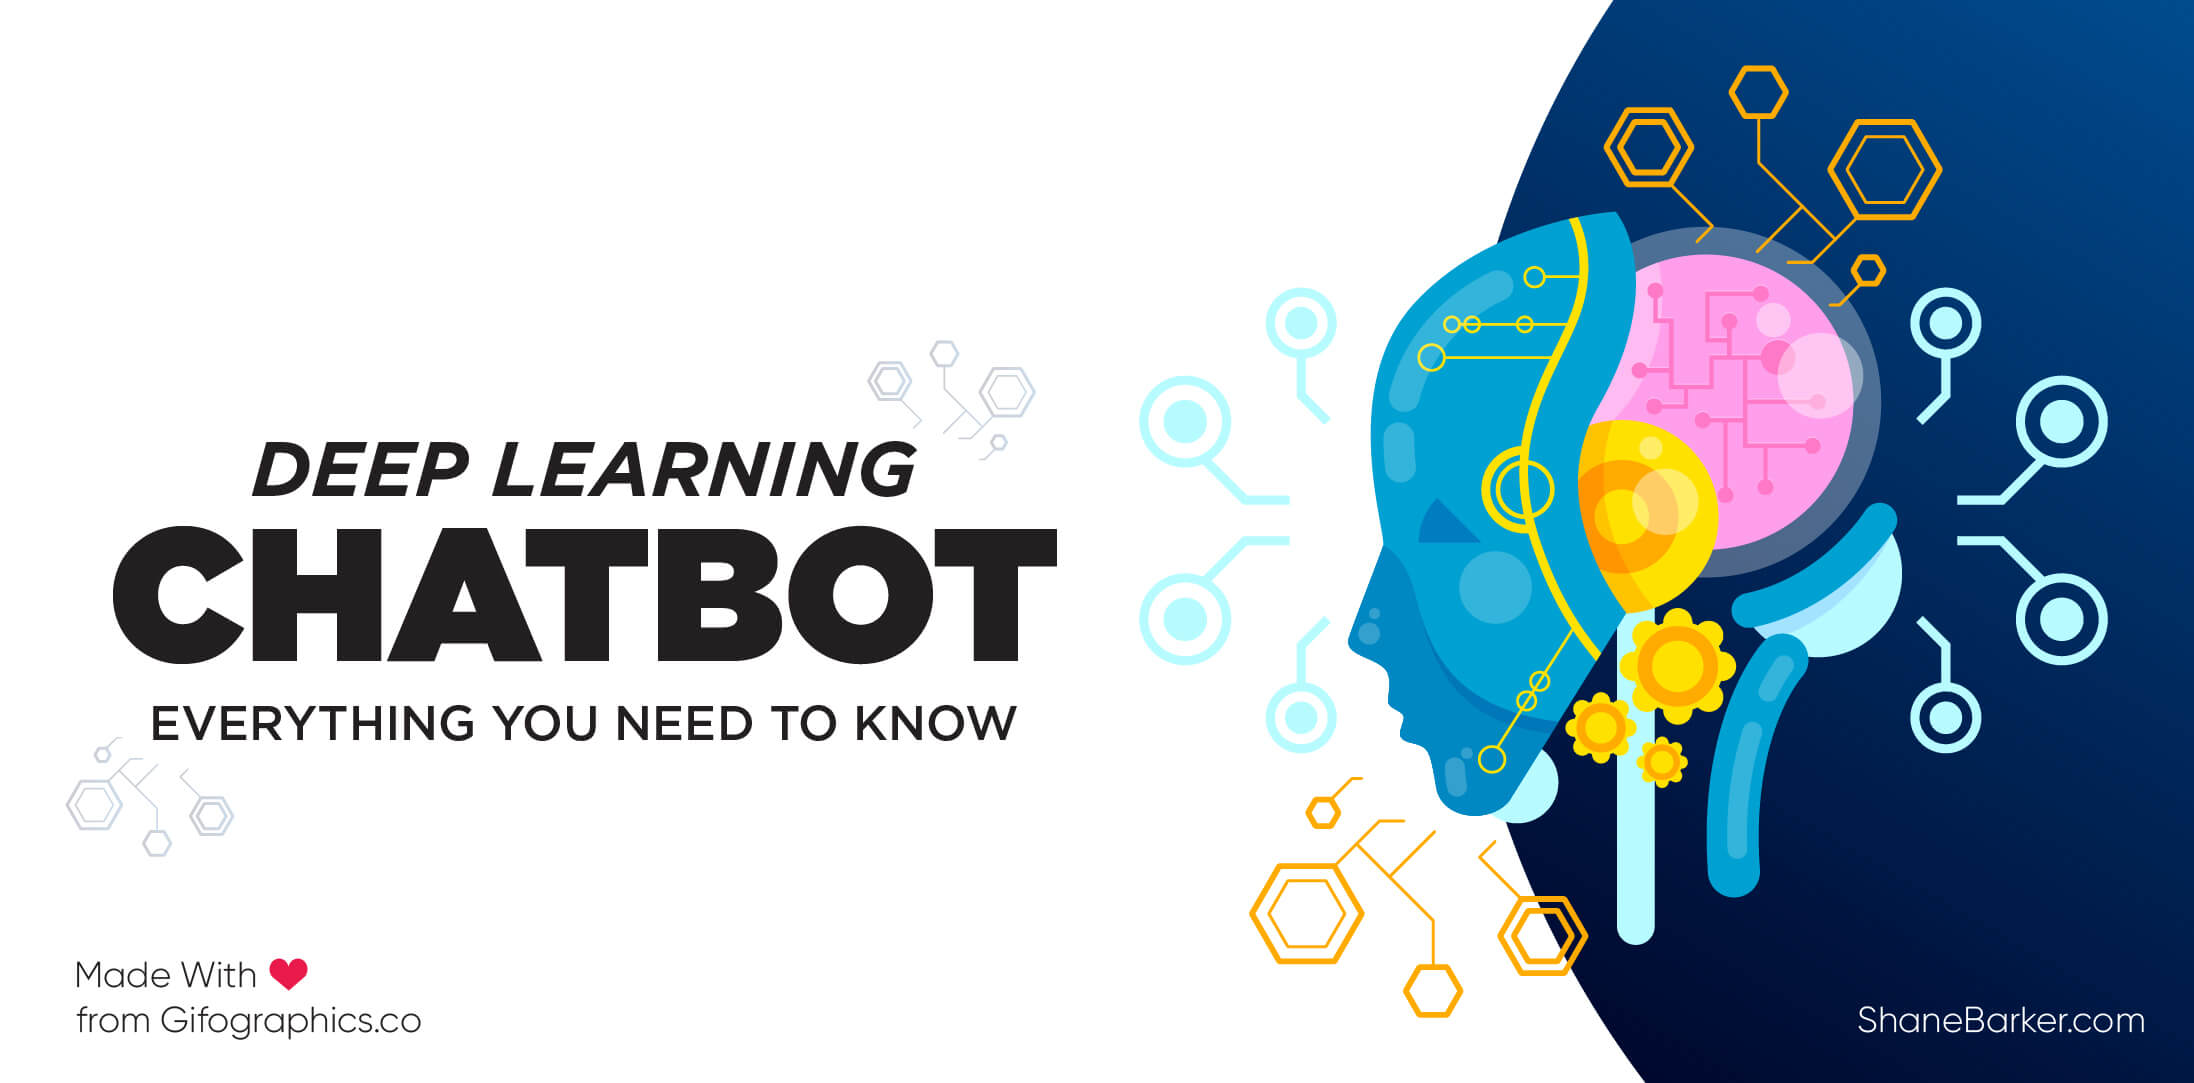 Deep Learning Chatbot Everything You Need to Know